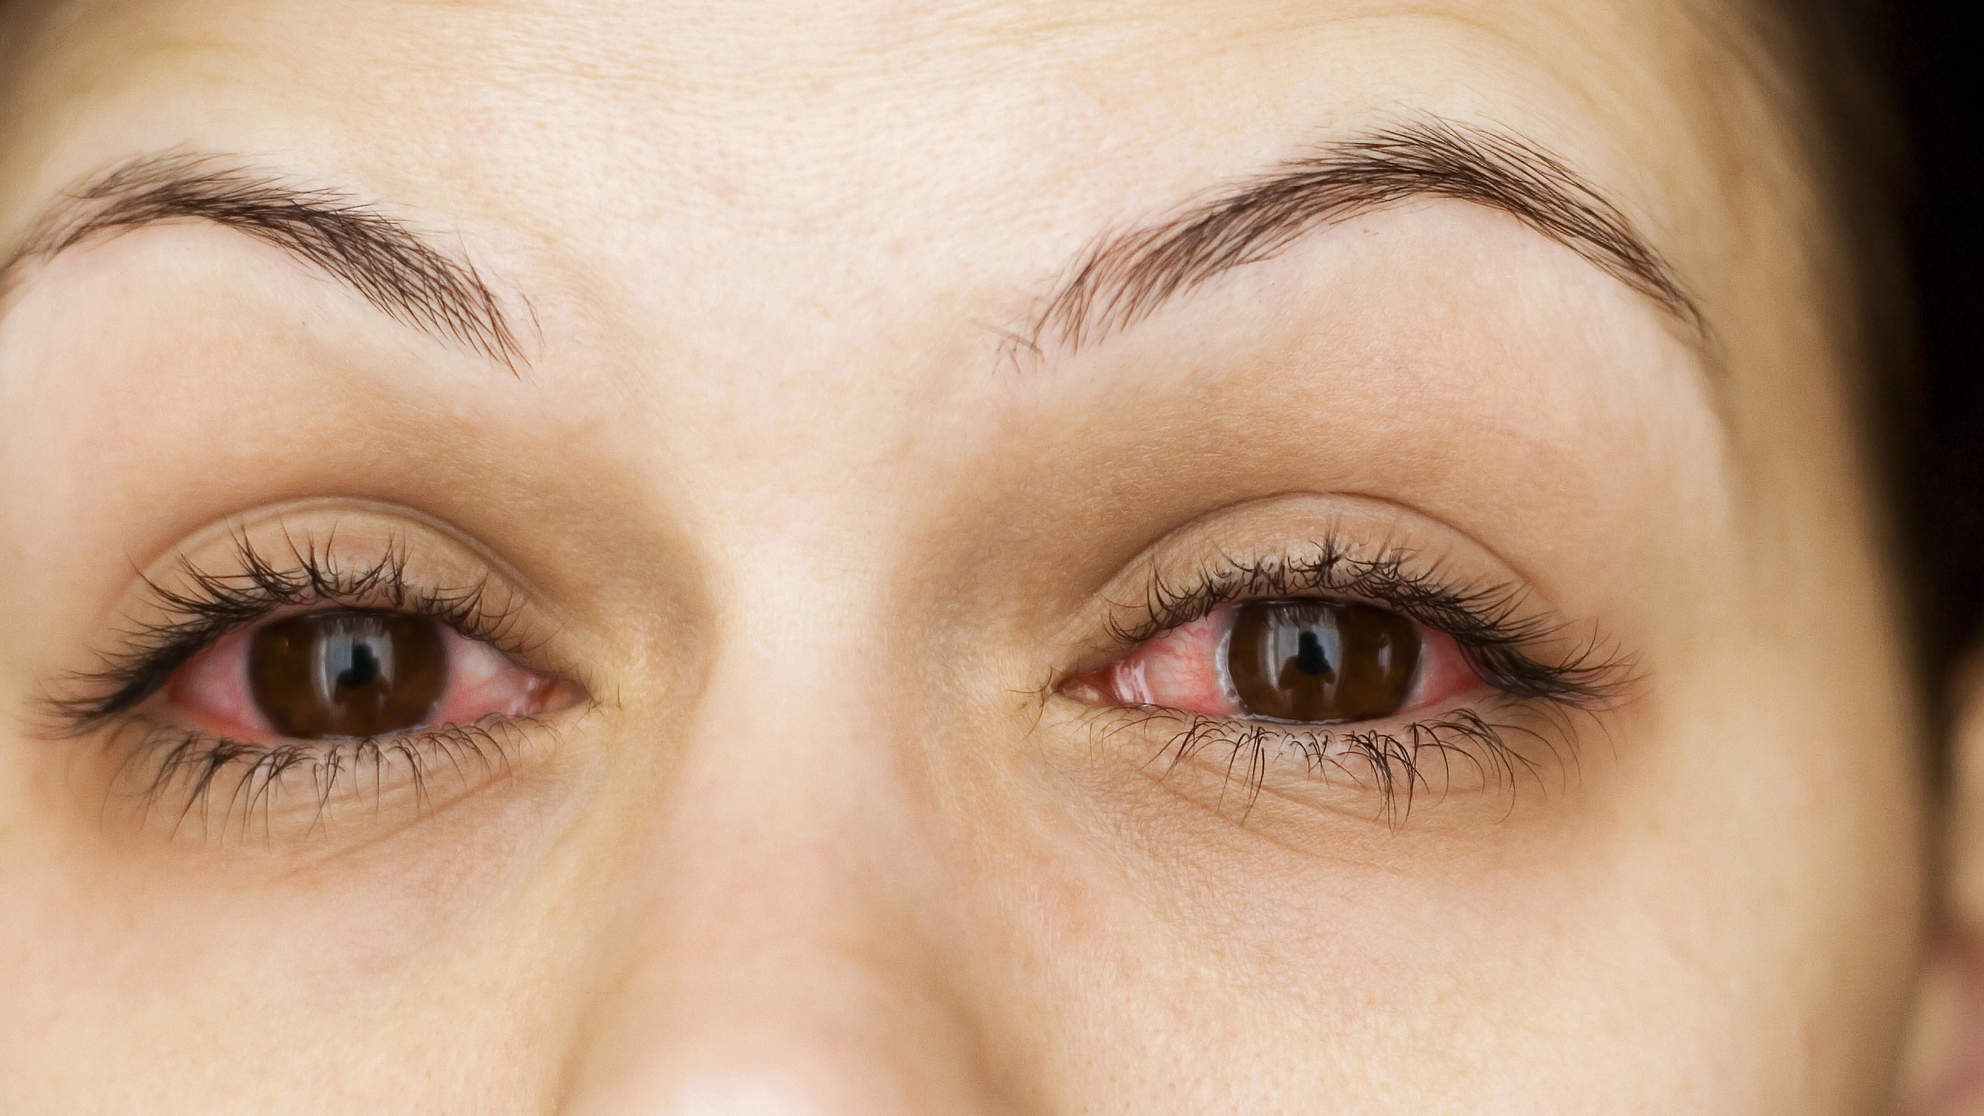 How to Tell the Difference Between Allergies and Pink Eye